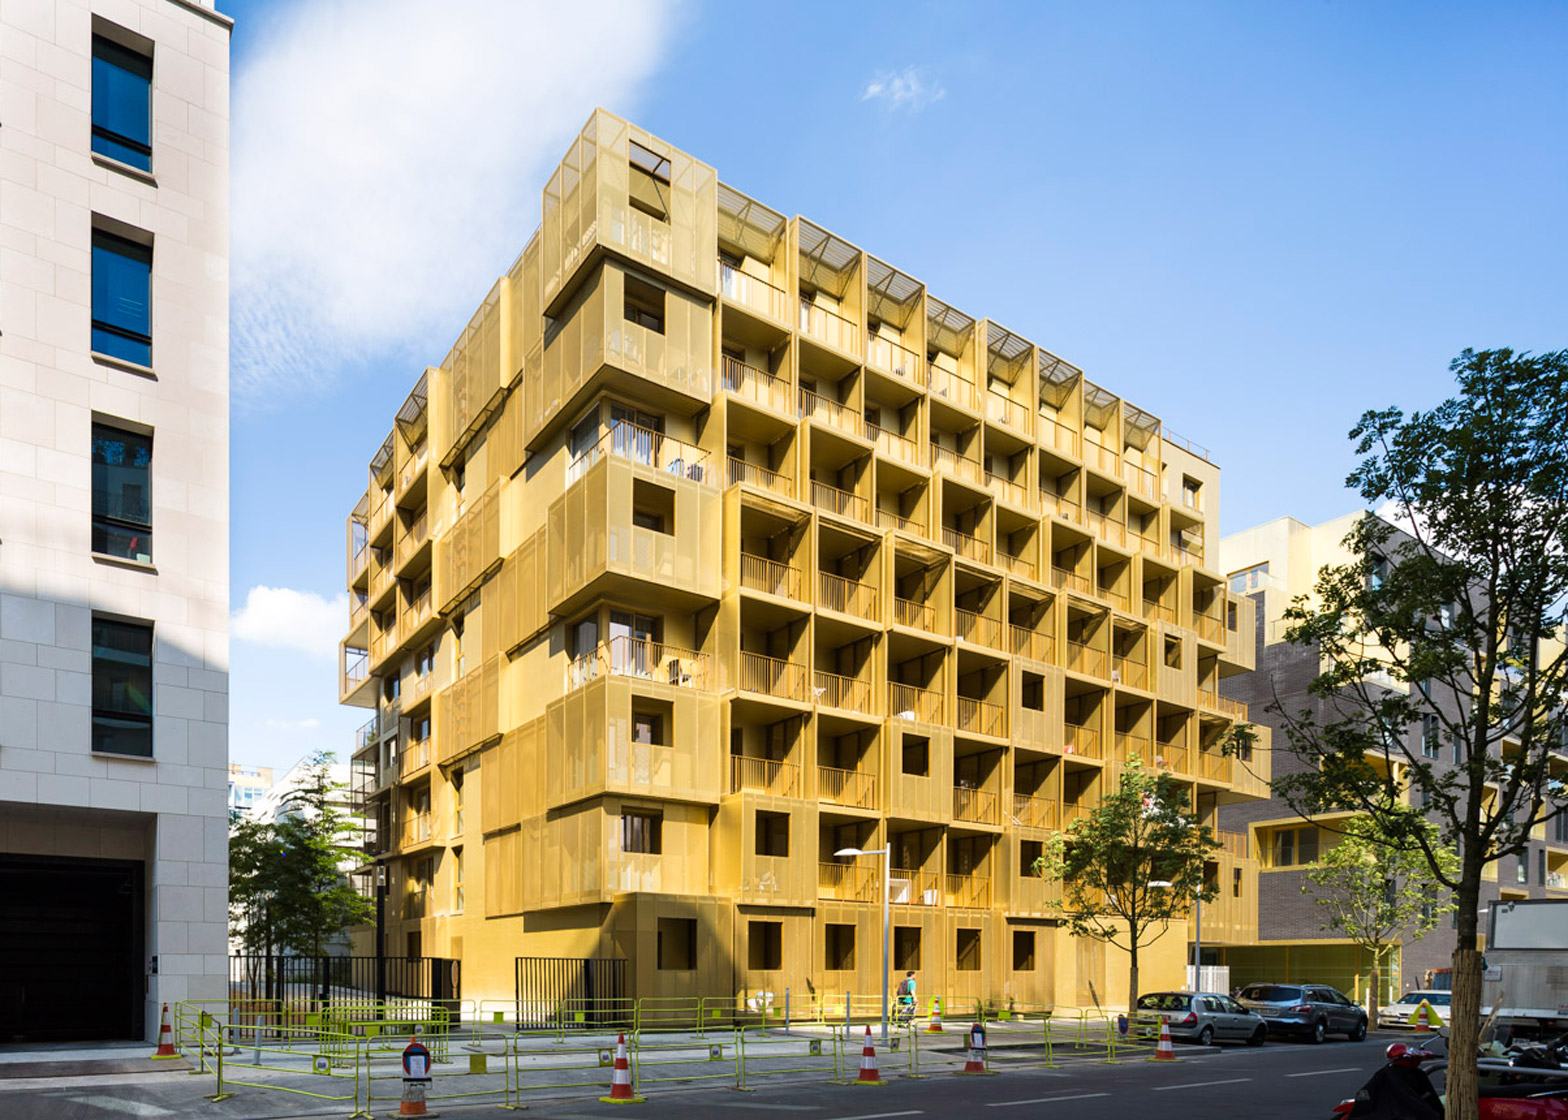 Hamonic+Masson completes student housing with a facade of golden cubes